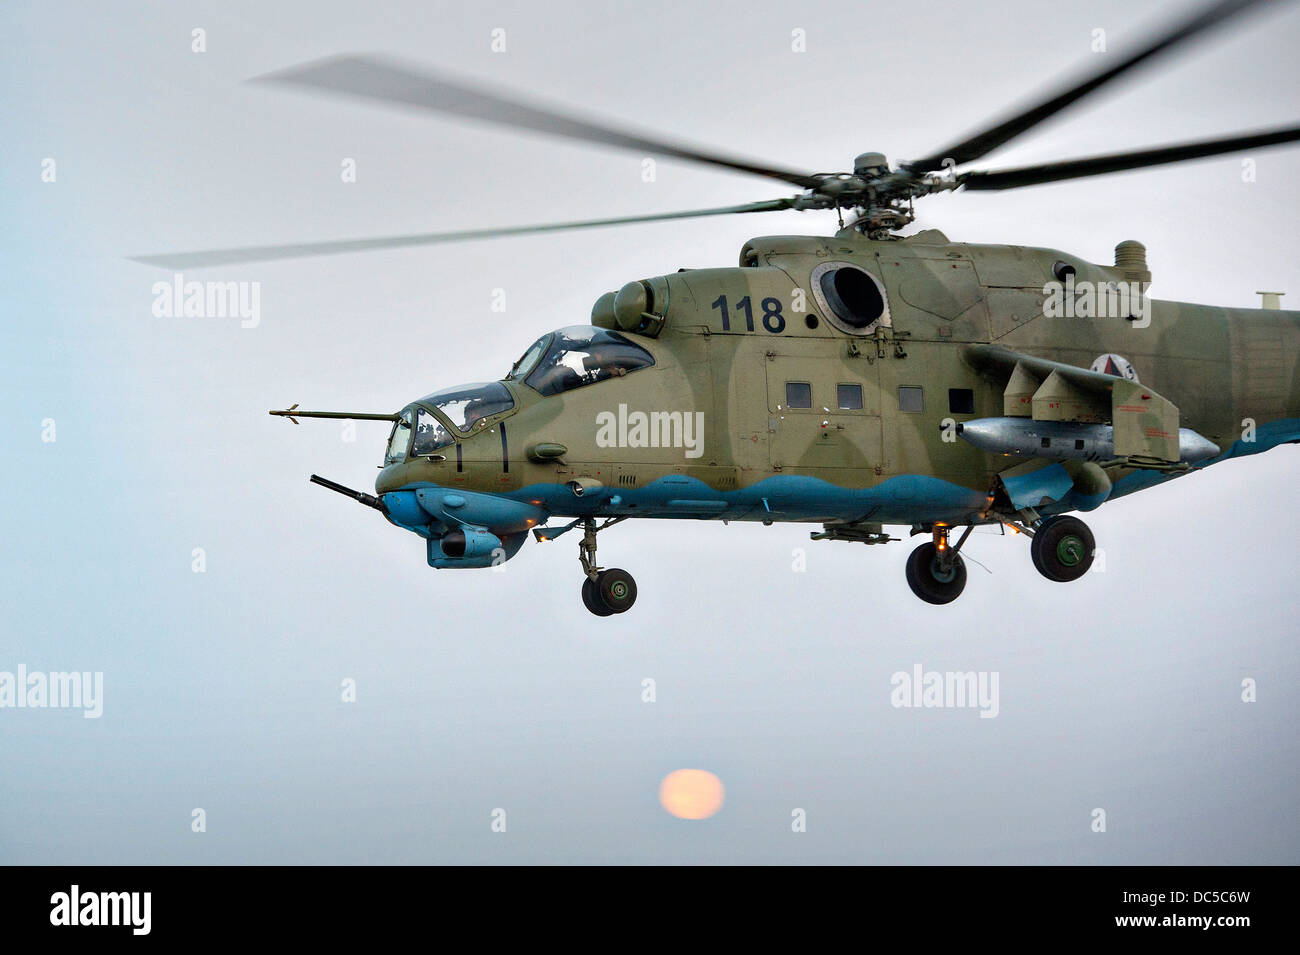 An Afghan air force Mi-35 attack helicopter departs on a mission July 23, 2013 at Jalalabad Airfield, Afghanistan. - Stock Image